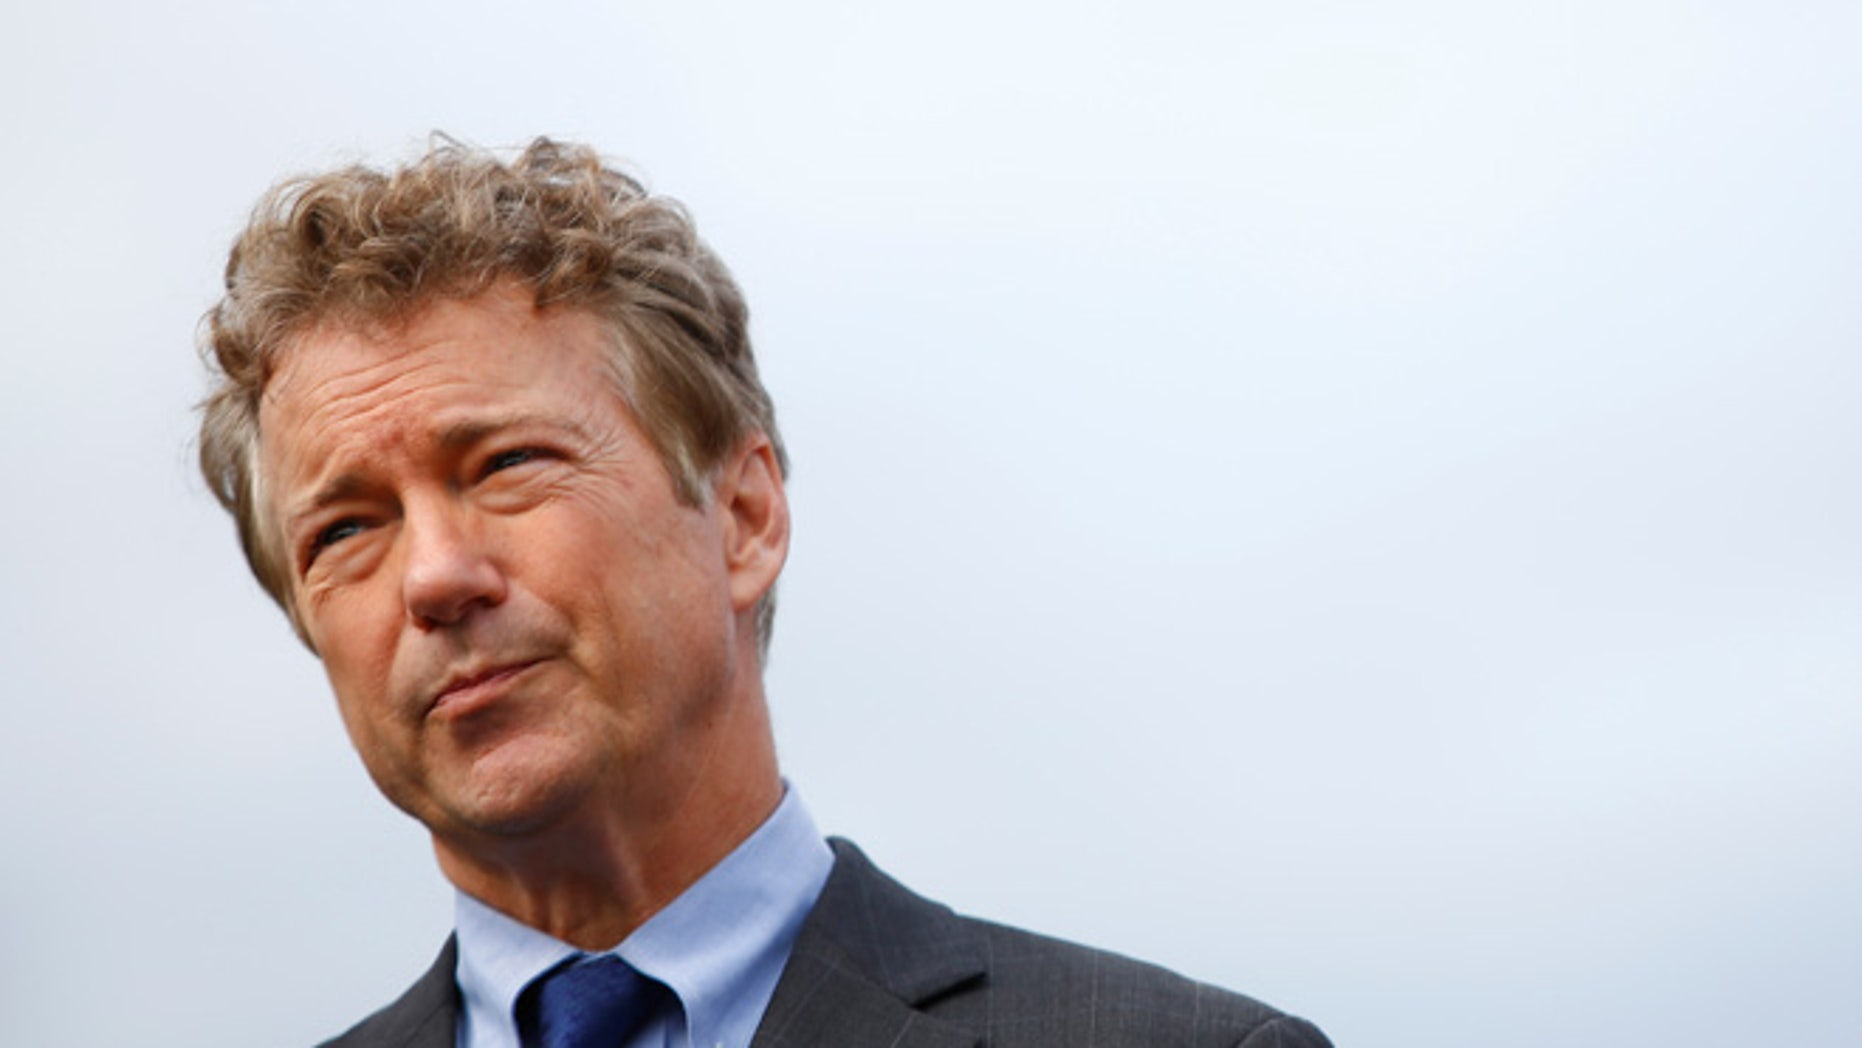 """As he has done in years past, Kentucky Republican Sen. Rand Paul on Saturday participated in a humorous """"airing of grievances,"""" a practice popularized on the television show Seinfeld."""